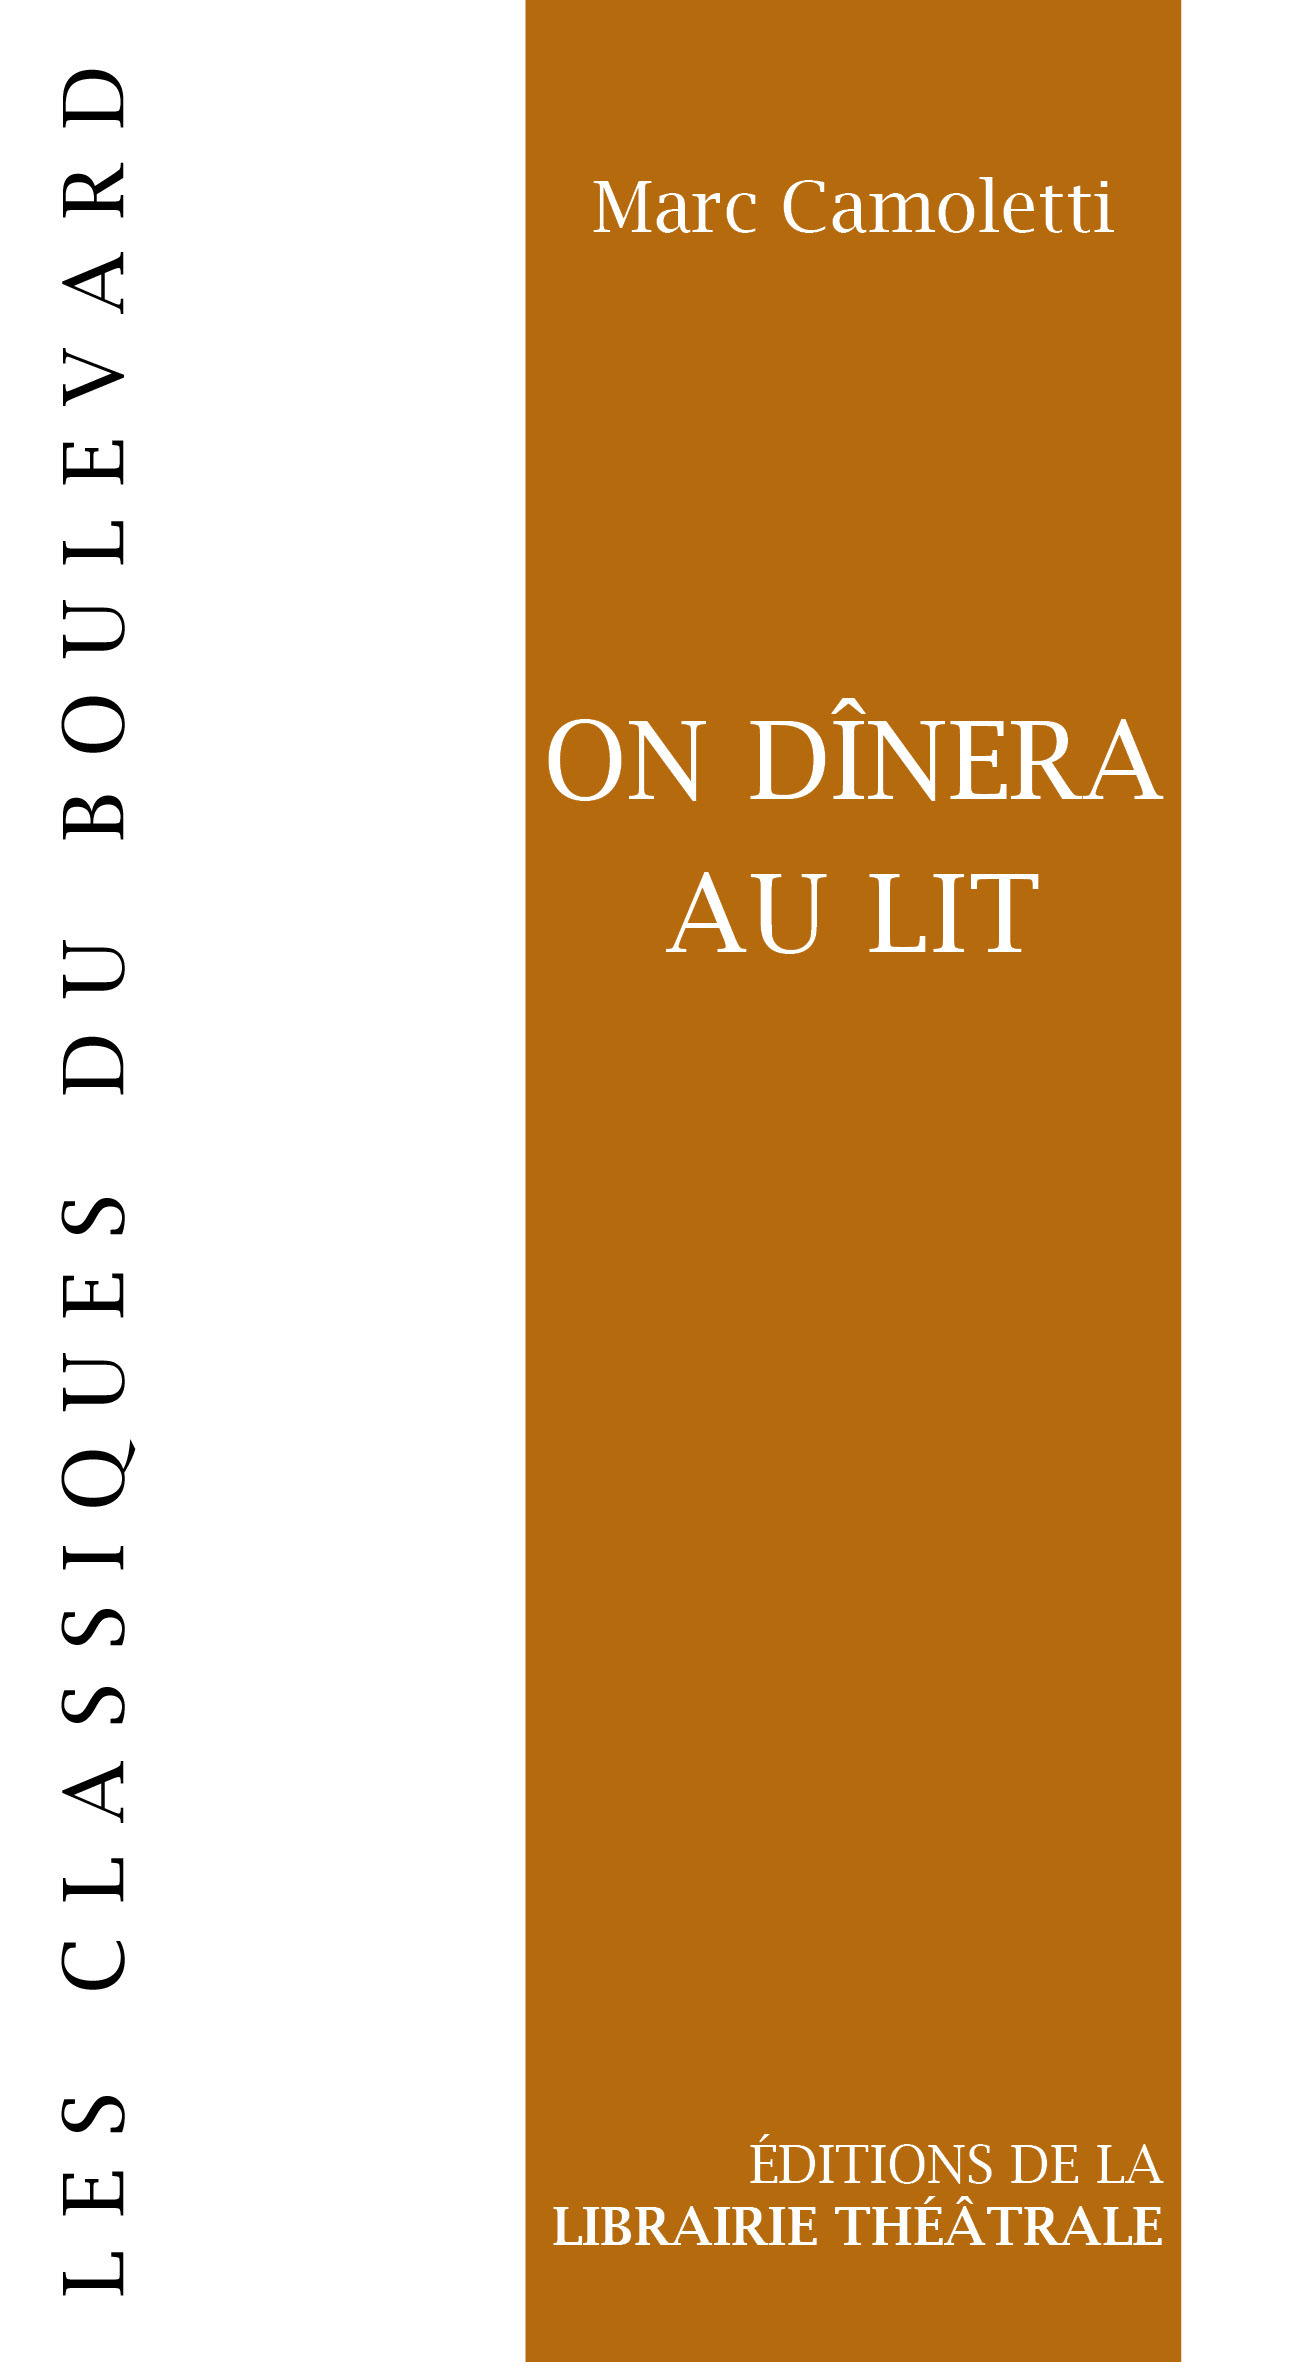 ON DINERA AU LIT